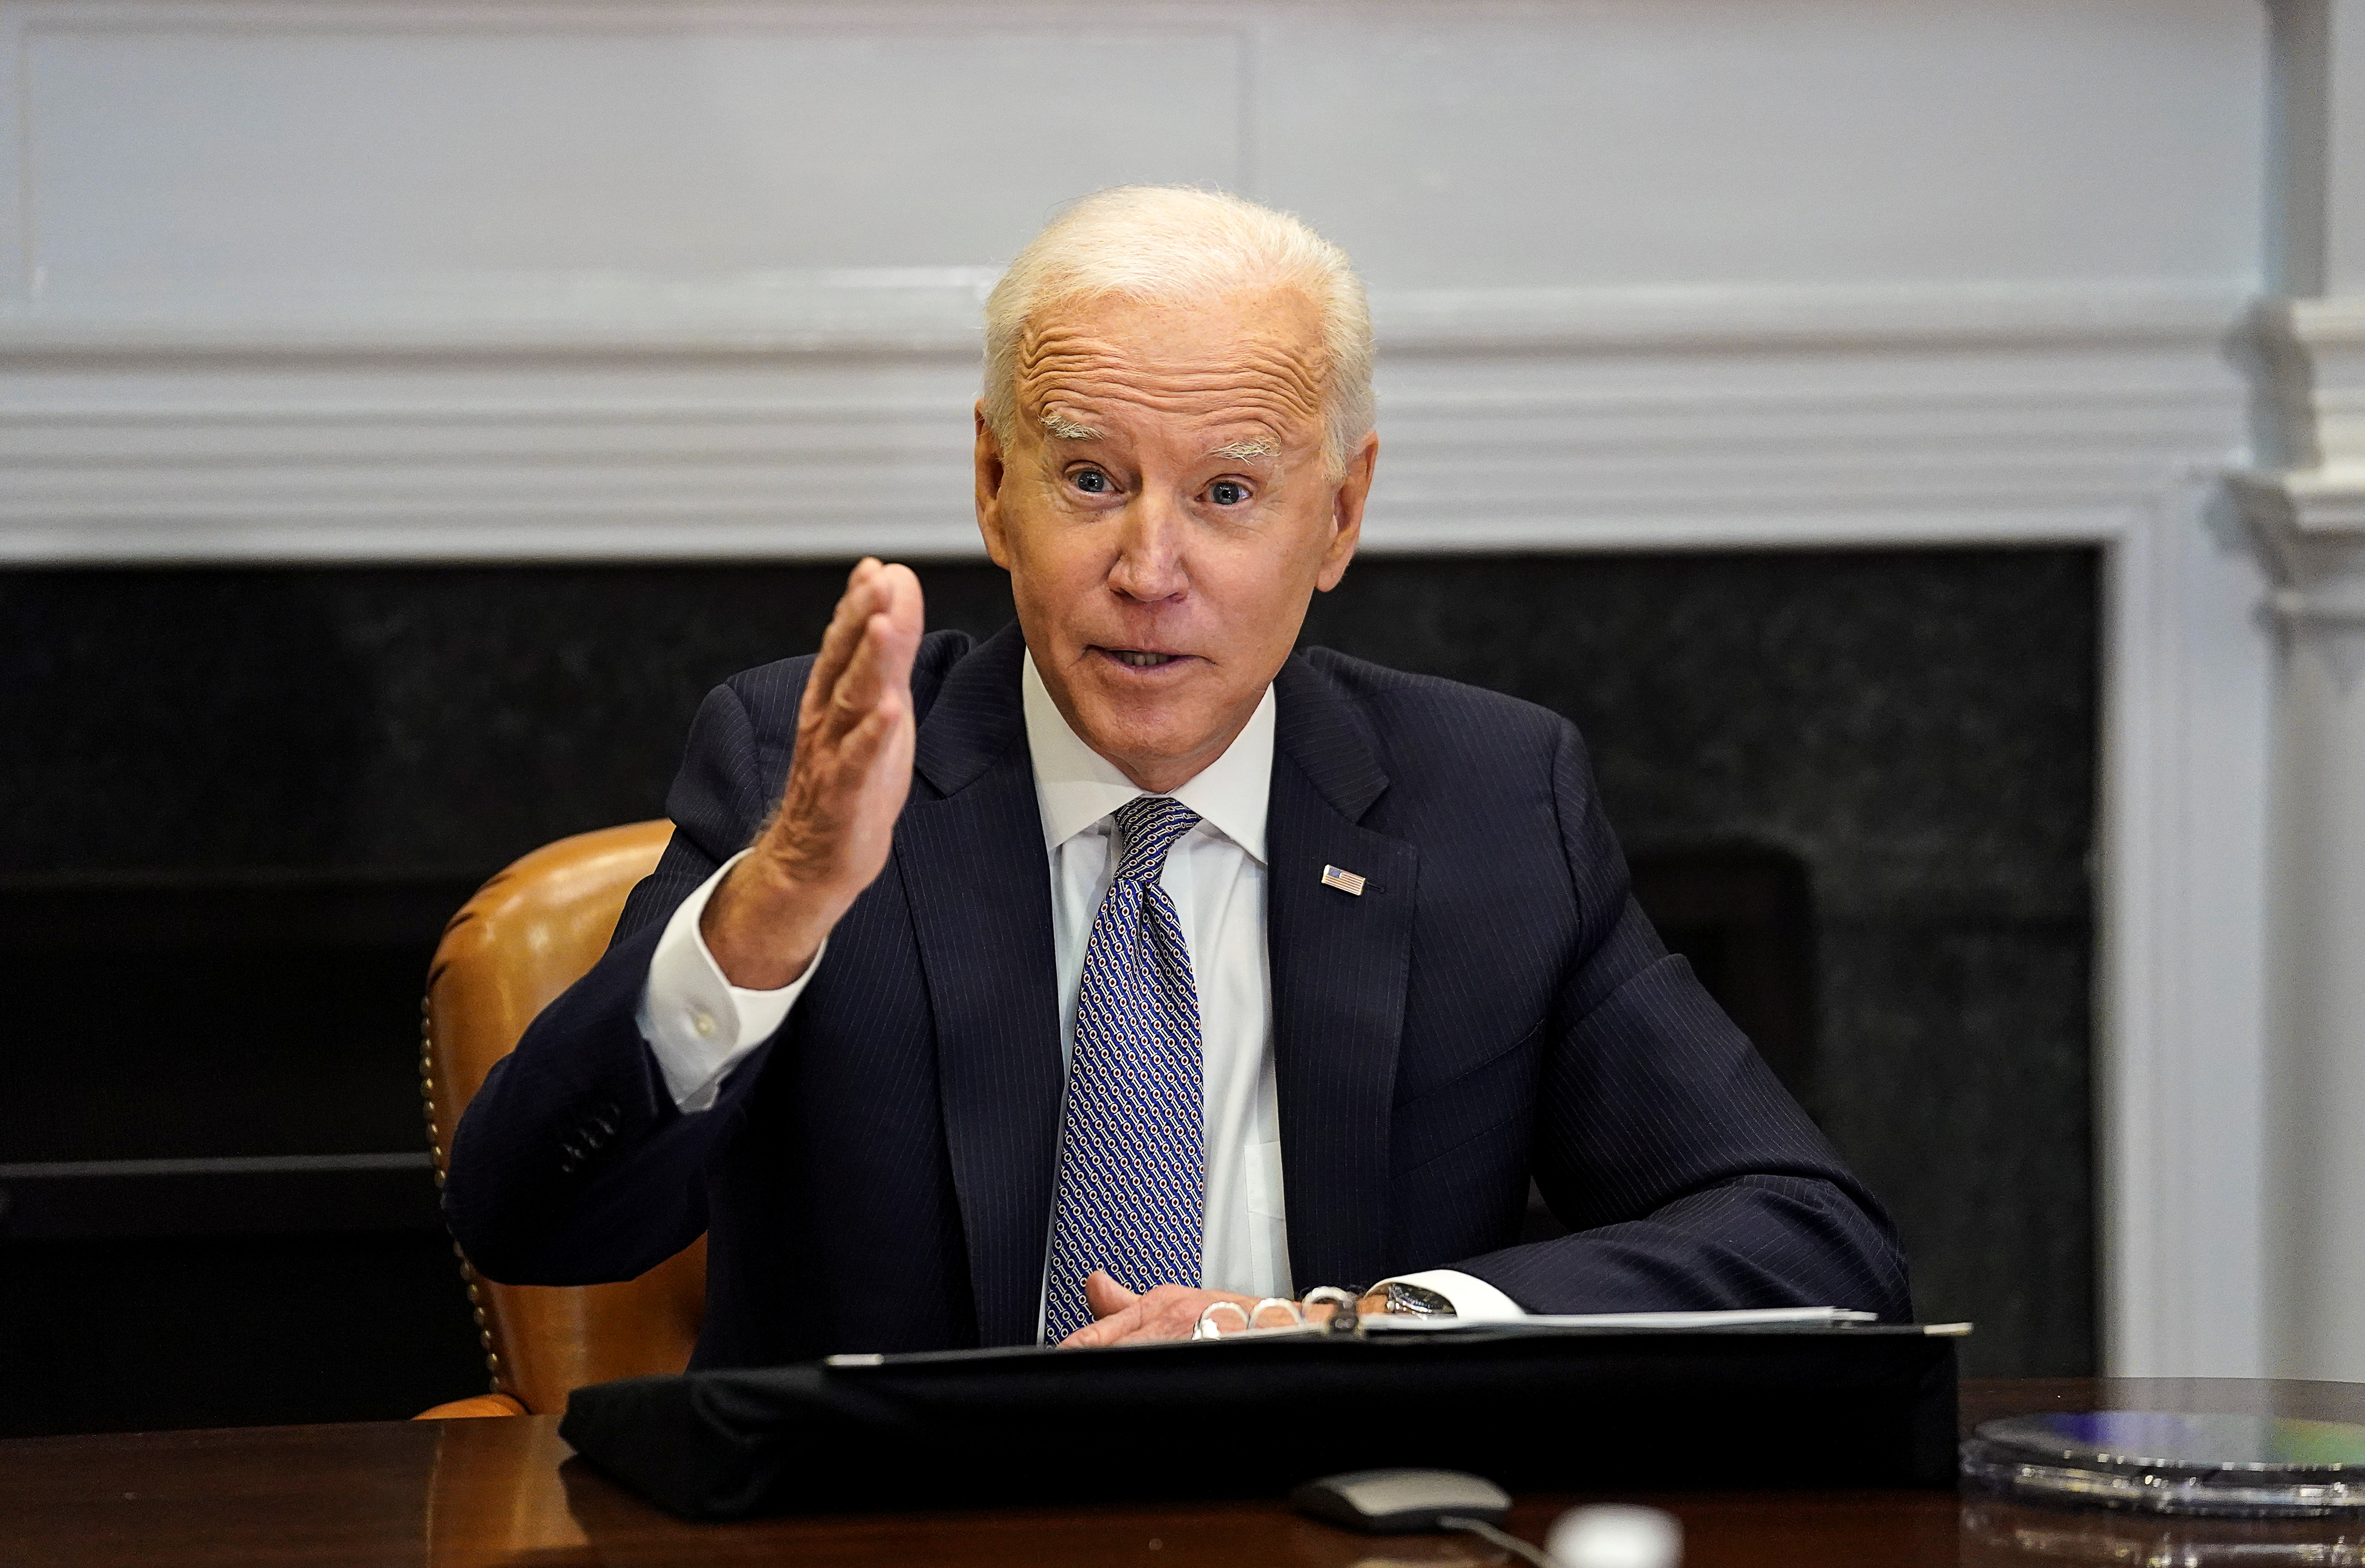 U.S. President Joe Biden speaks as he participates in the virtual CEO Summit on Semiconductor and Supply Chain Resilience from the Roosevelt Room at the White House in Washington, U.S., April 12, 2021. REUTERS/Kevin Lamarque